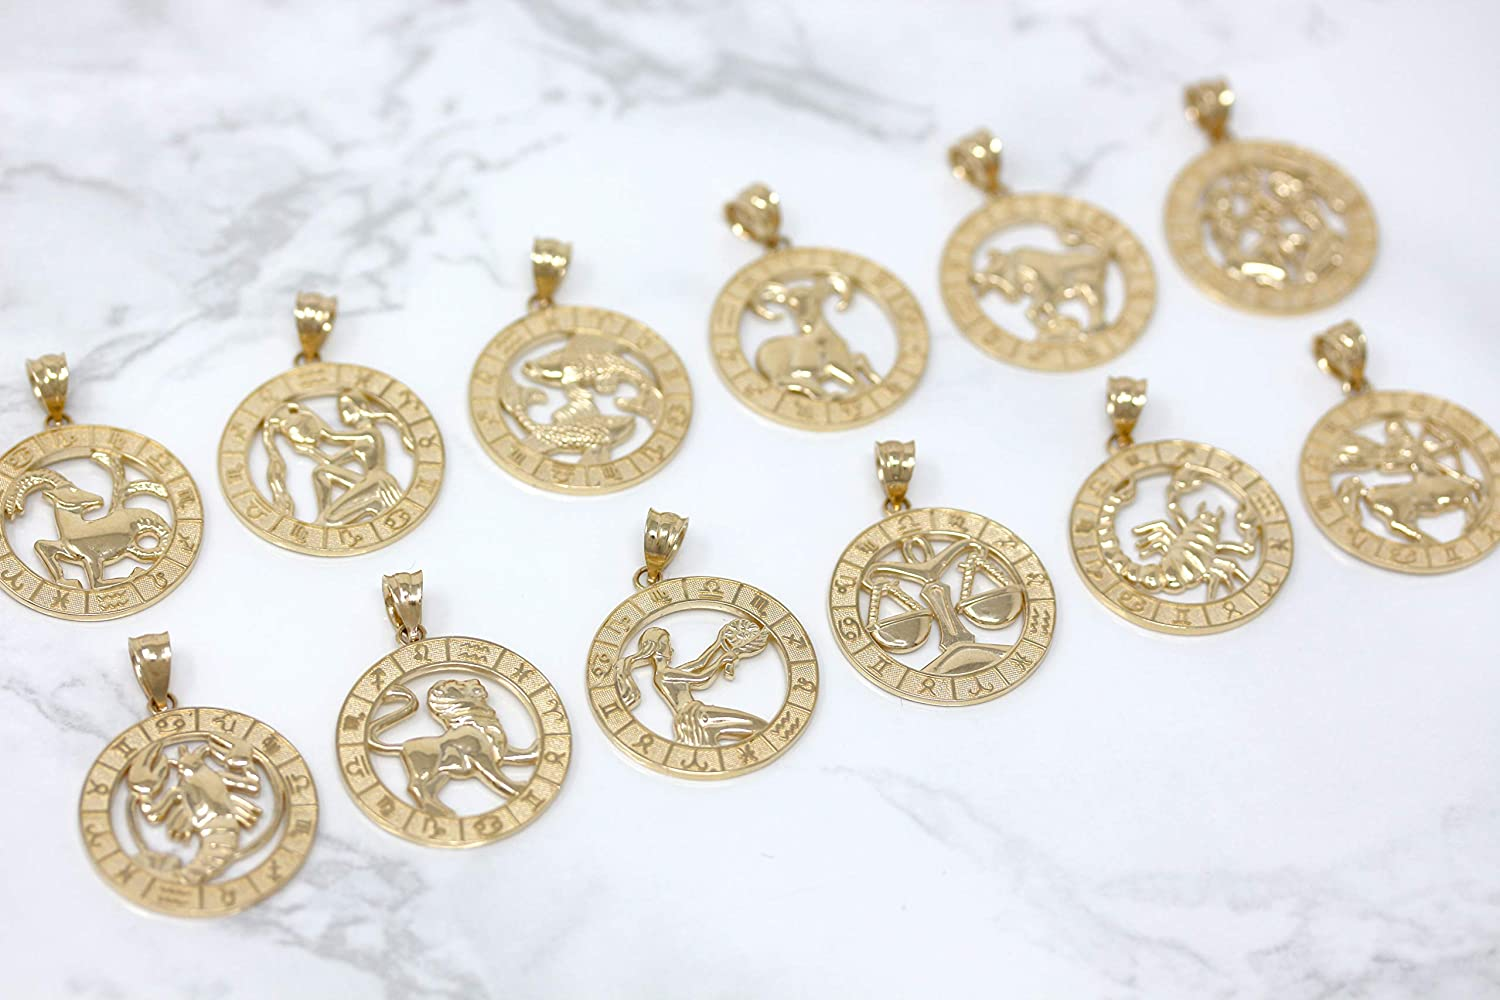 CaliRoseJewelry 10k Yellow Gold Zodiac Pendant JewelryDepotUSA MP2430YG-3-PS-10k